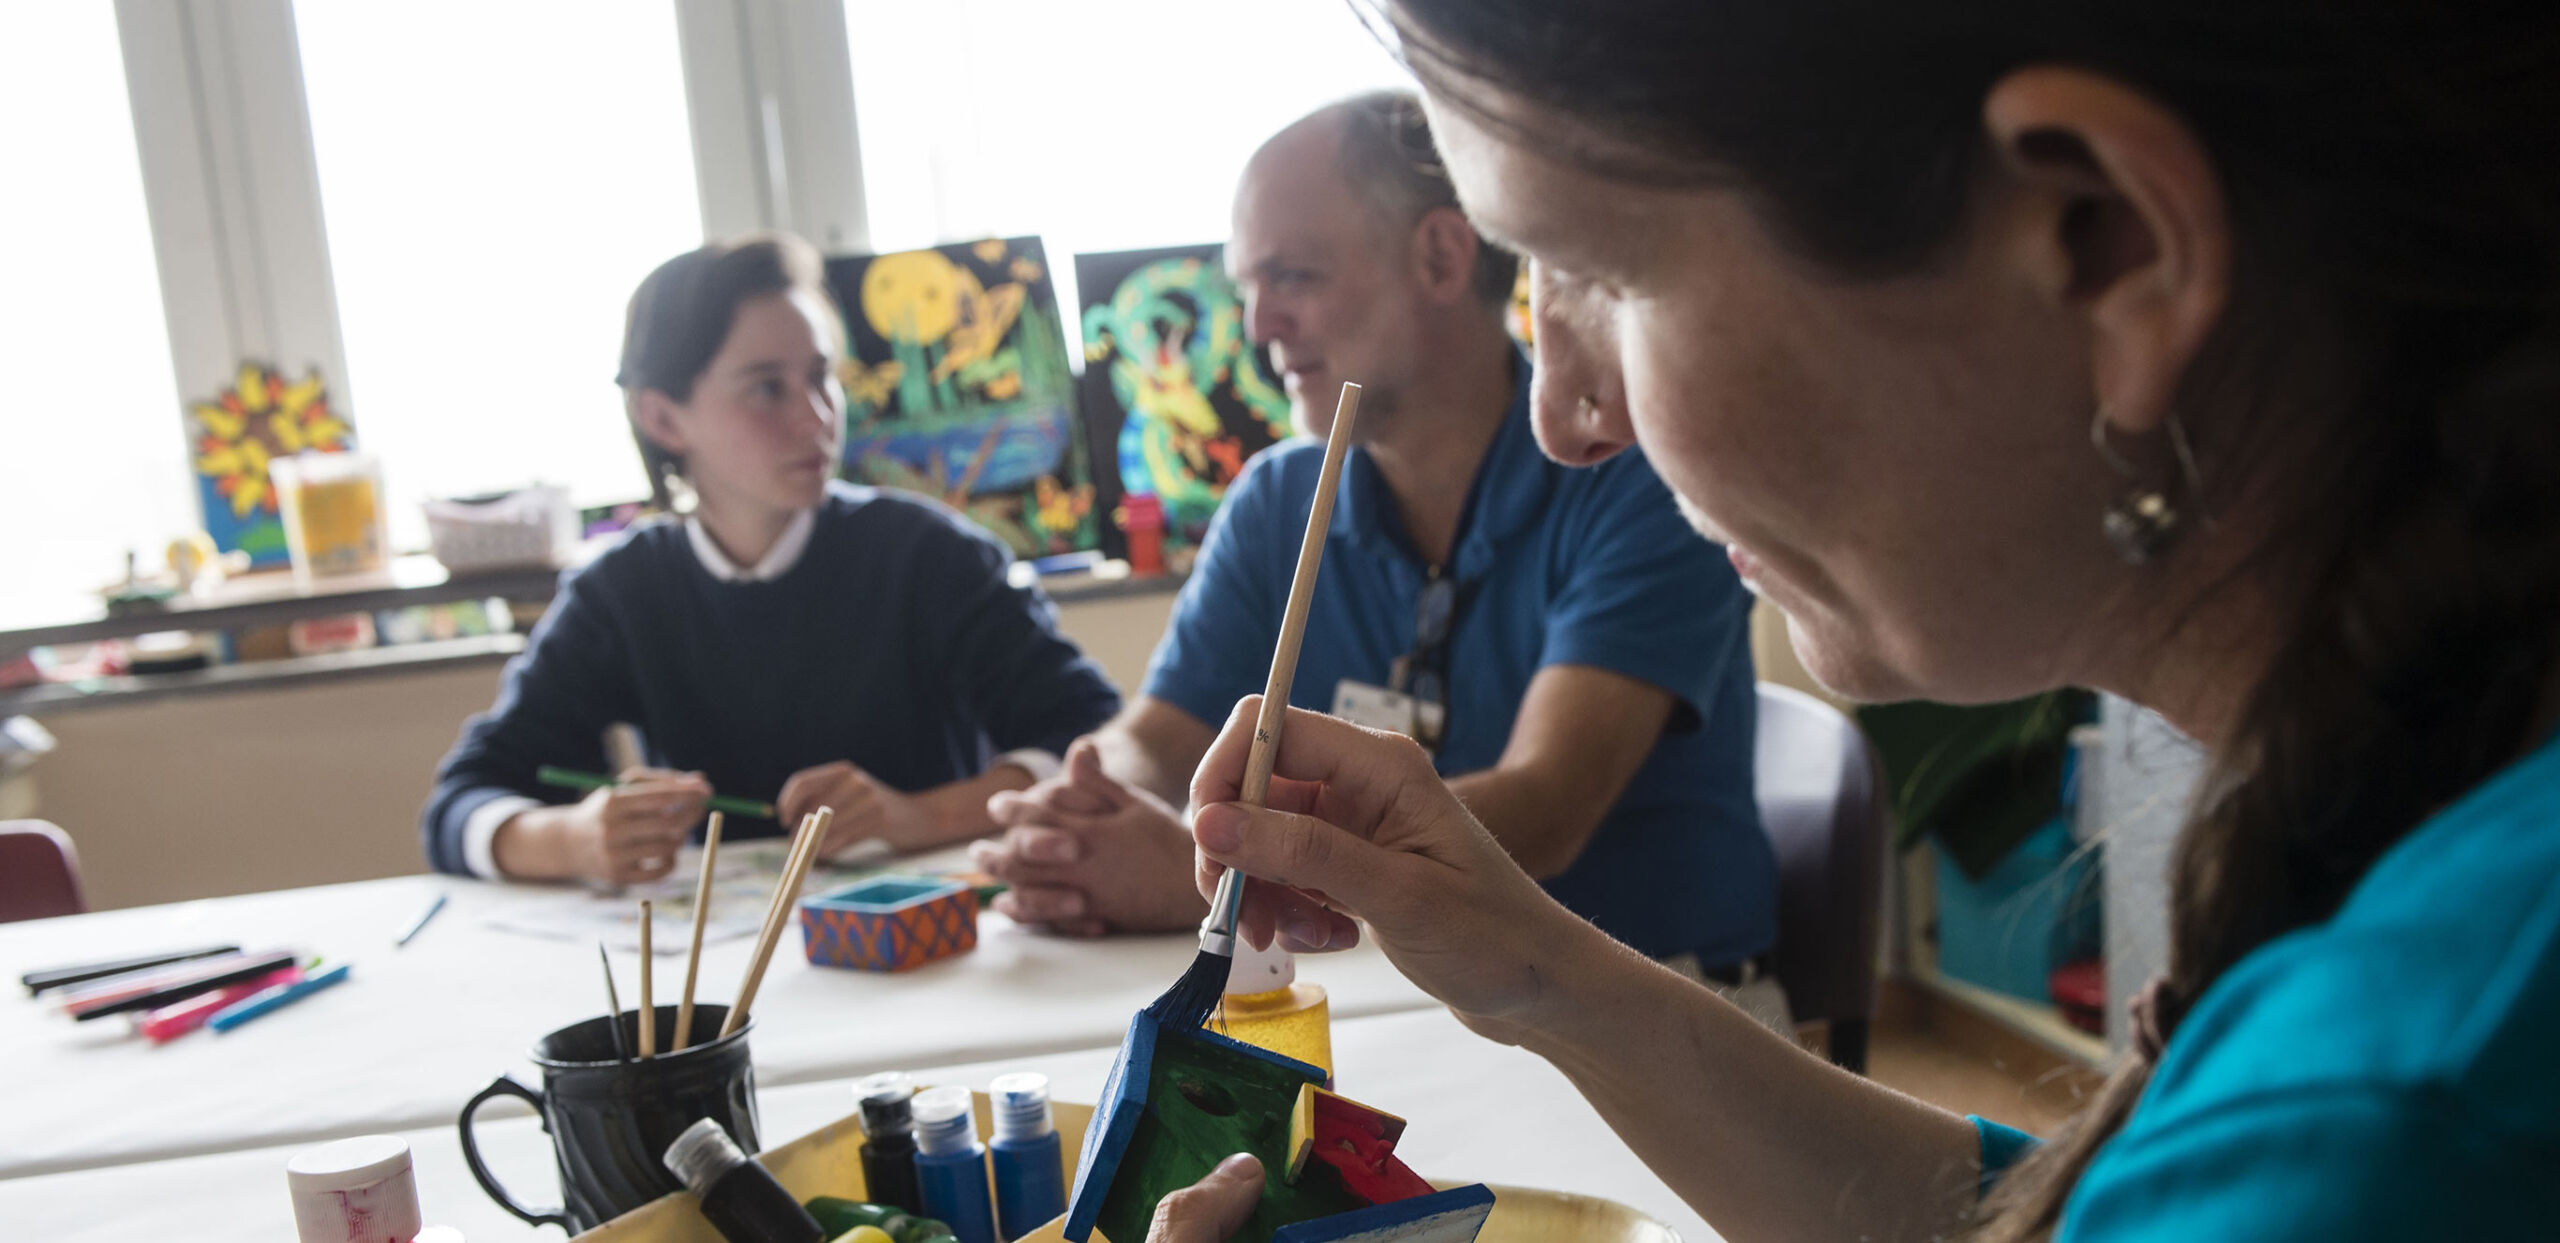 Patients in art therapy session, Cooley Dickinson Inpatient Behavioral Health Unit, Northampton, MA 01060.